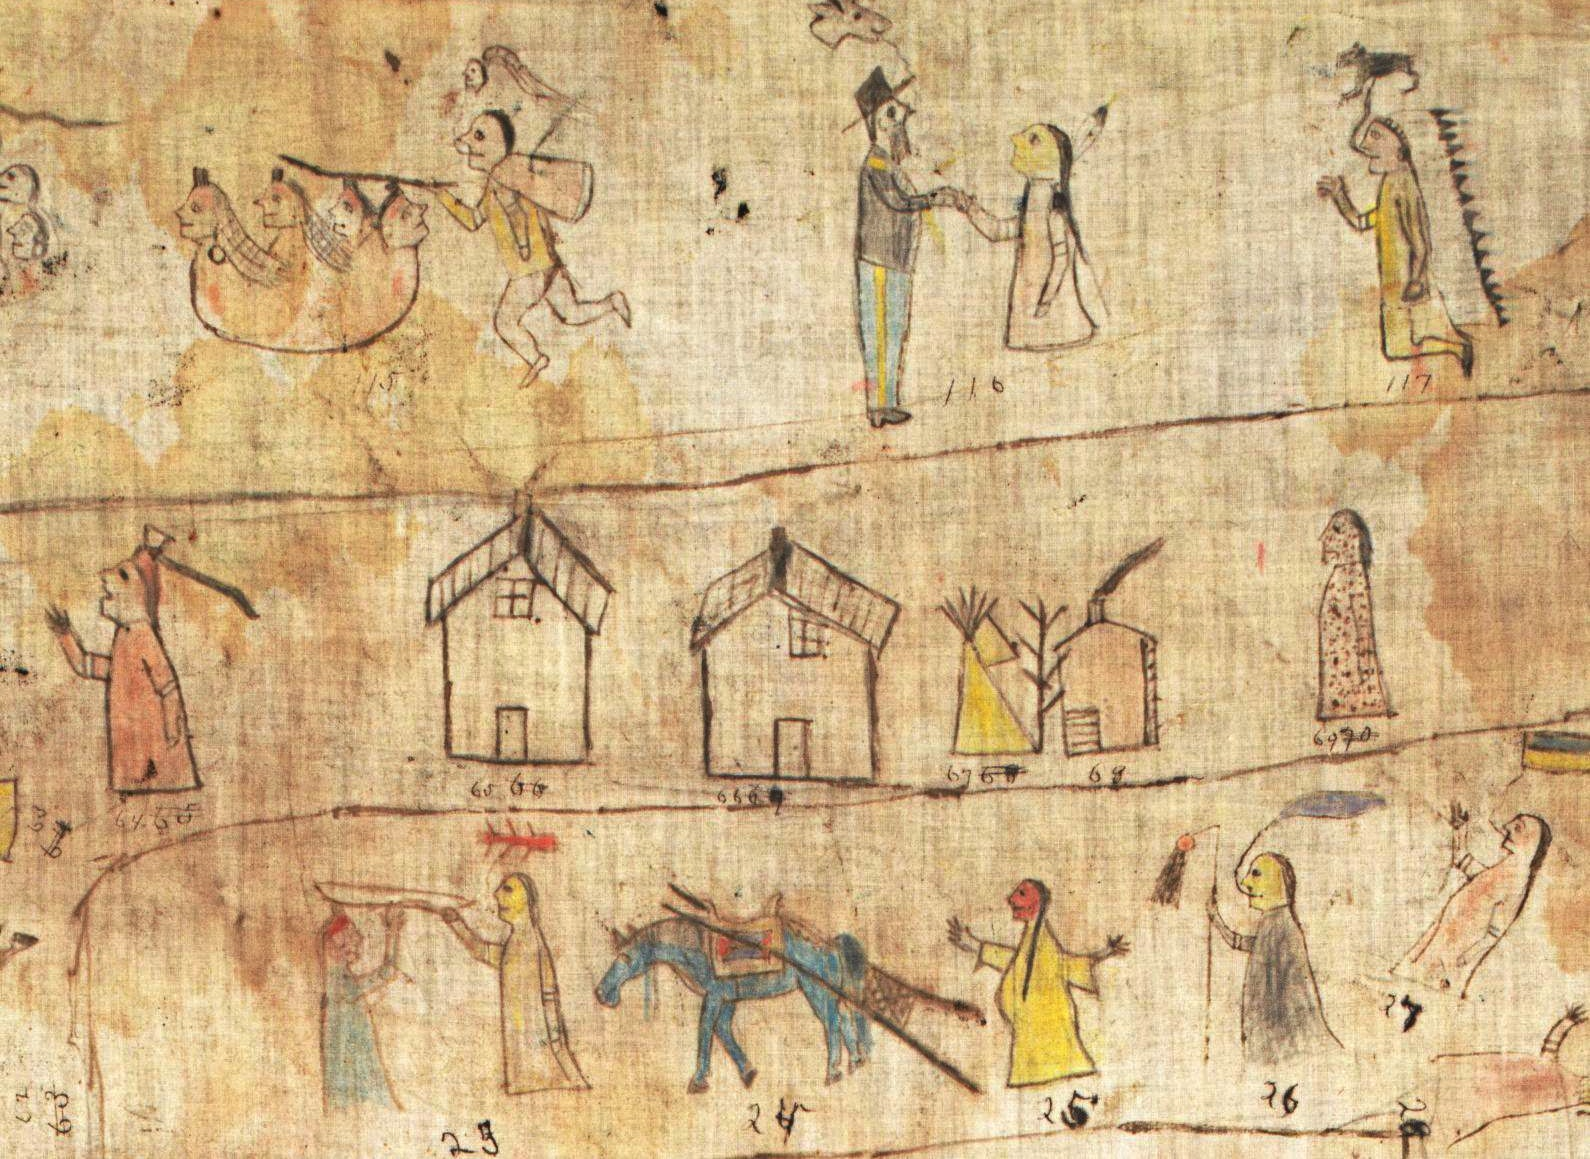 Historic Lakota winter count went unnoticed in trunk for decades